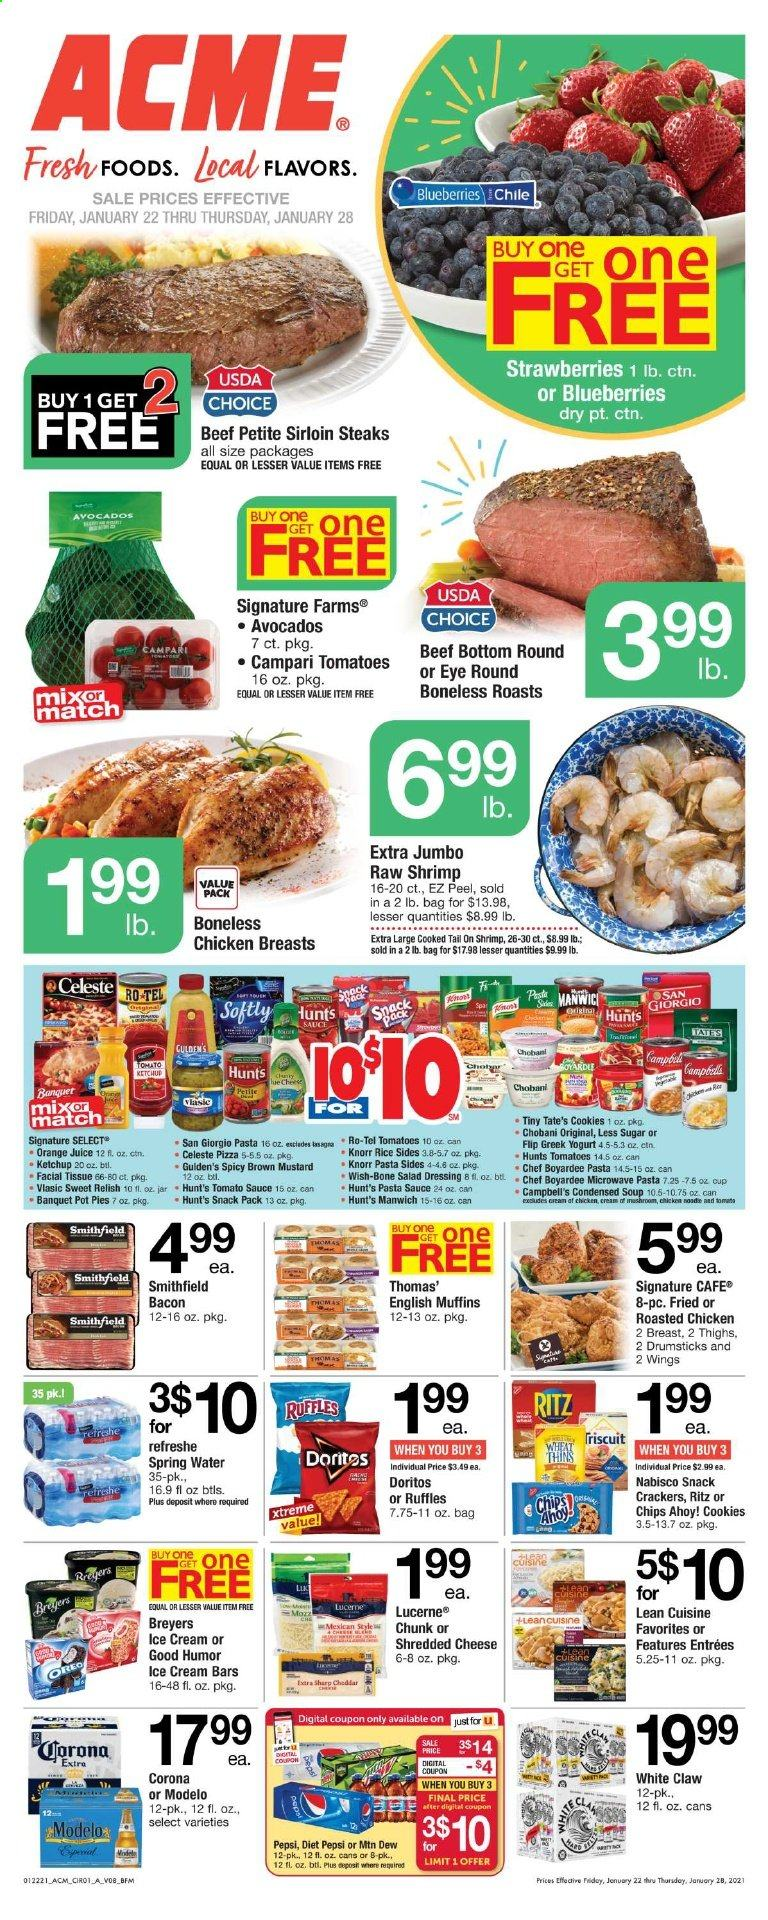 ACME Flyer - 01.22.2021 - 01.28.2021 - Sales products - Corona, tomatoes, avocado, blueberries, strawberries, orange, pot pies, muffin, shrimps, english muffins, pizza, condensed soup, soup, Knorr, salad, shredded cheese, cheese, greek yoghurt, sauce, ice cream, ice cream bars, cookies, cracker, crackers, Doritos, chips, snack, rice, pasta, mustard, tomato sauce, ketchup, pasta sauce, dressing, salad dressing, Pepsi, orange juice, juice, diet pepsi, spring water, water, chicken, chicken breast, beef meat, pot, cup, jar, muffins. Page 1.